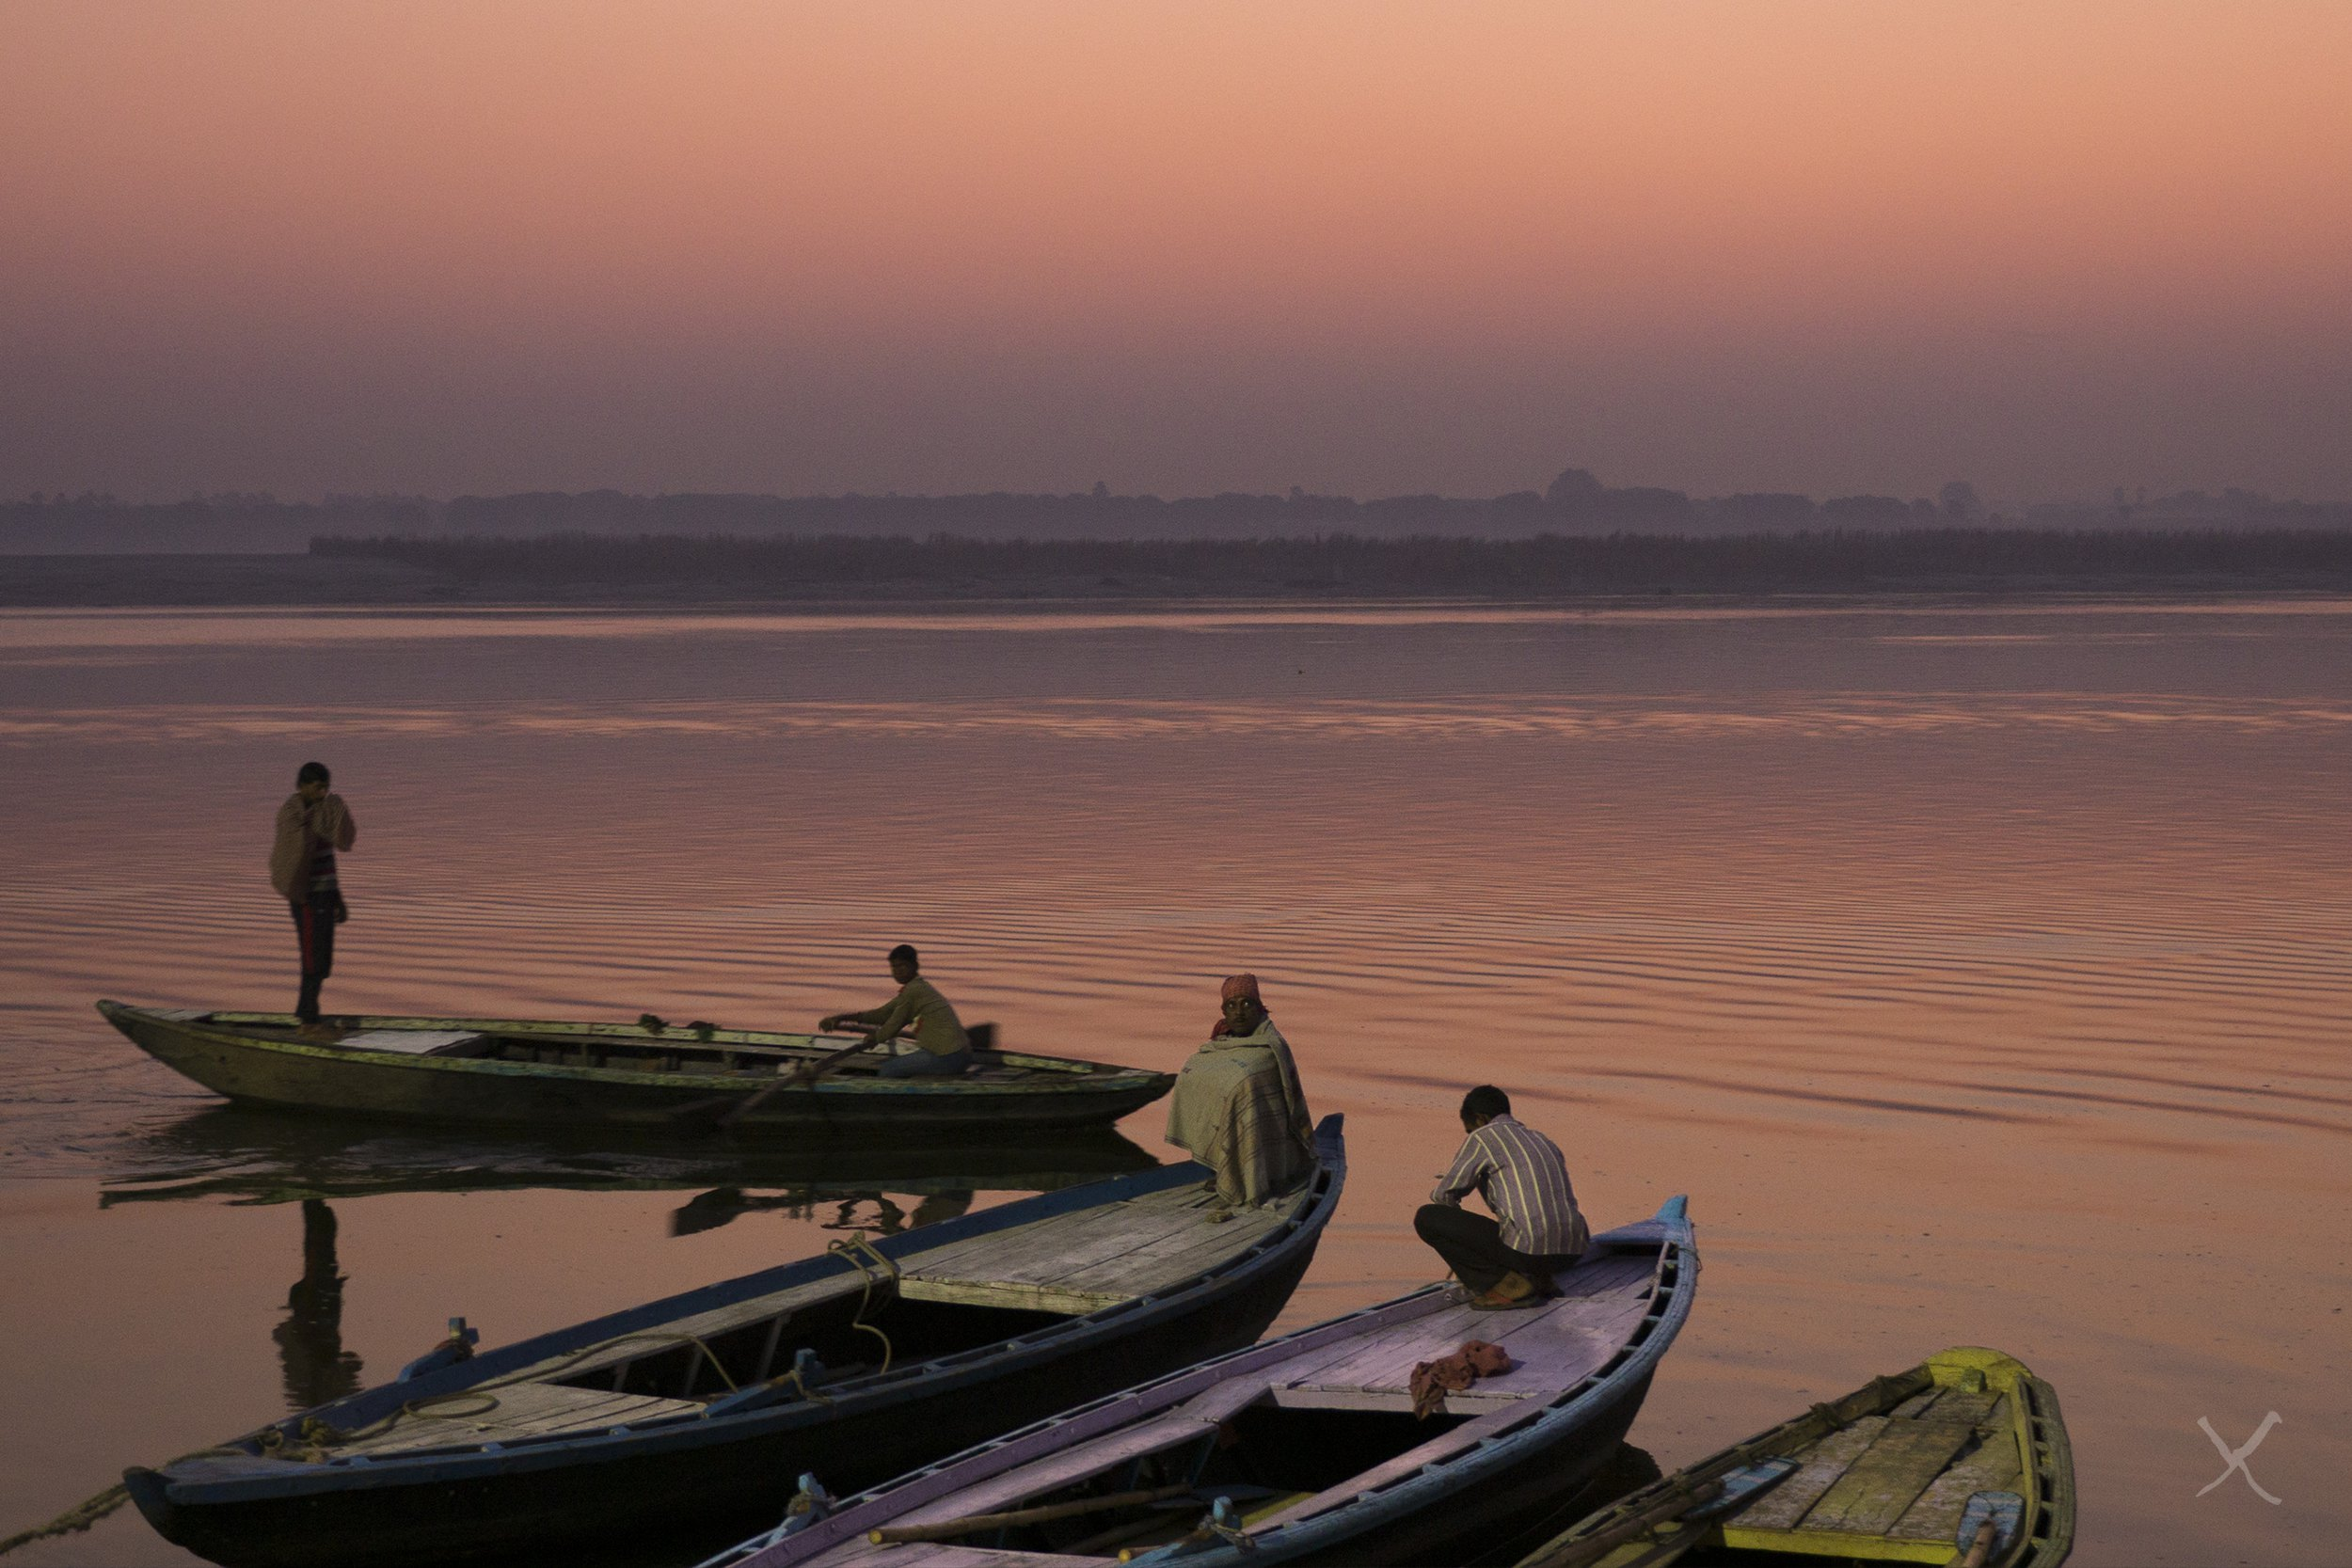 SunrisecoloursVaranasi.jpg